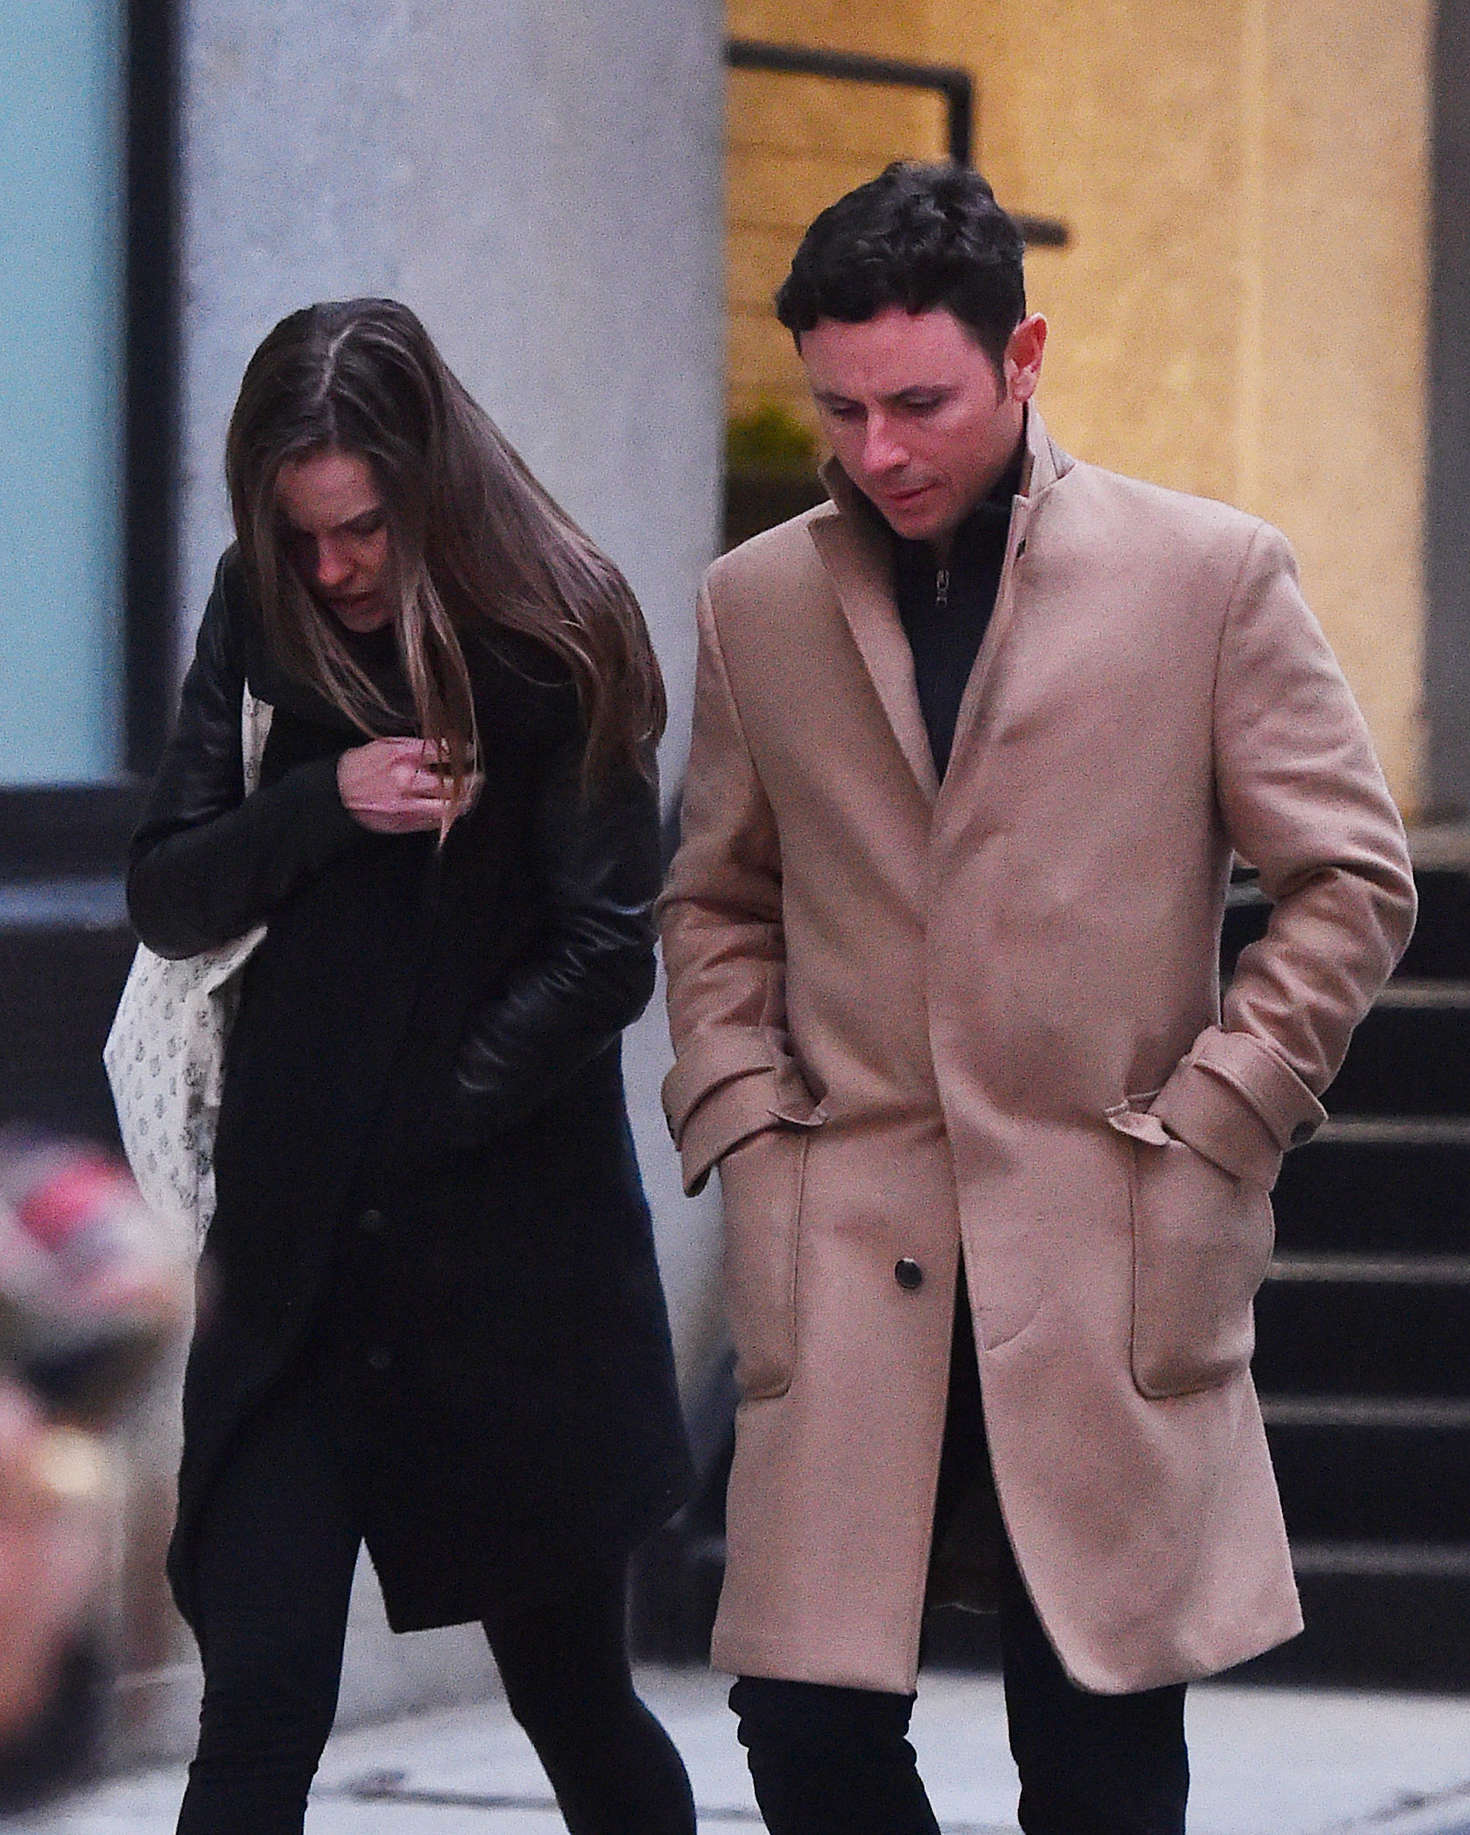 Hilary Swank with her fiance out in New York-1